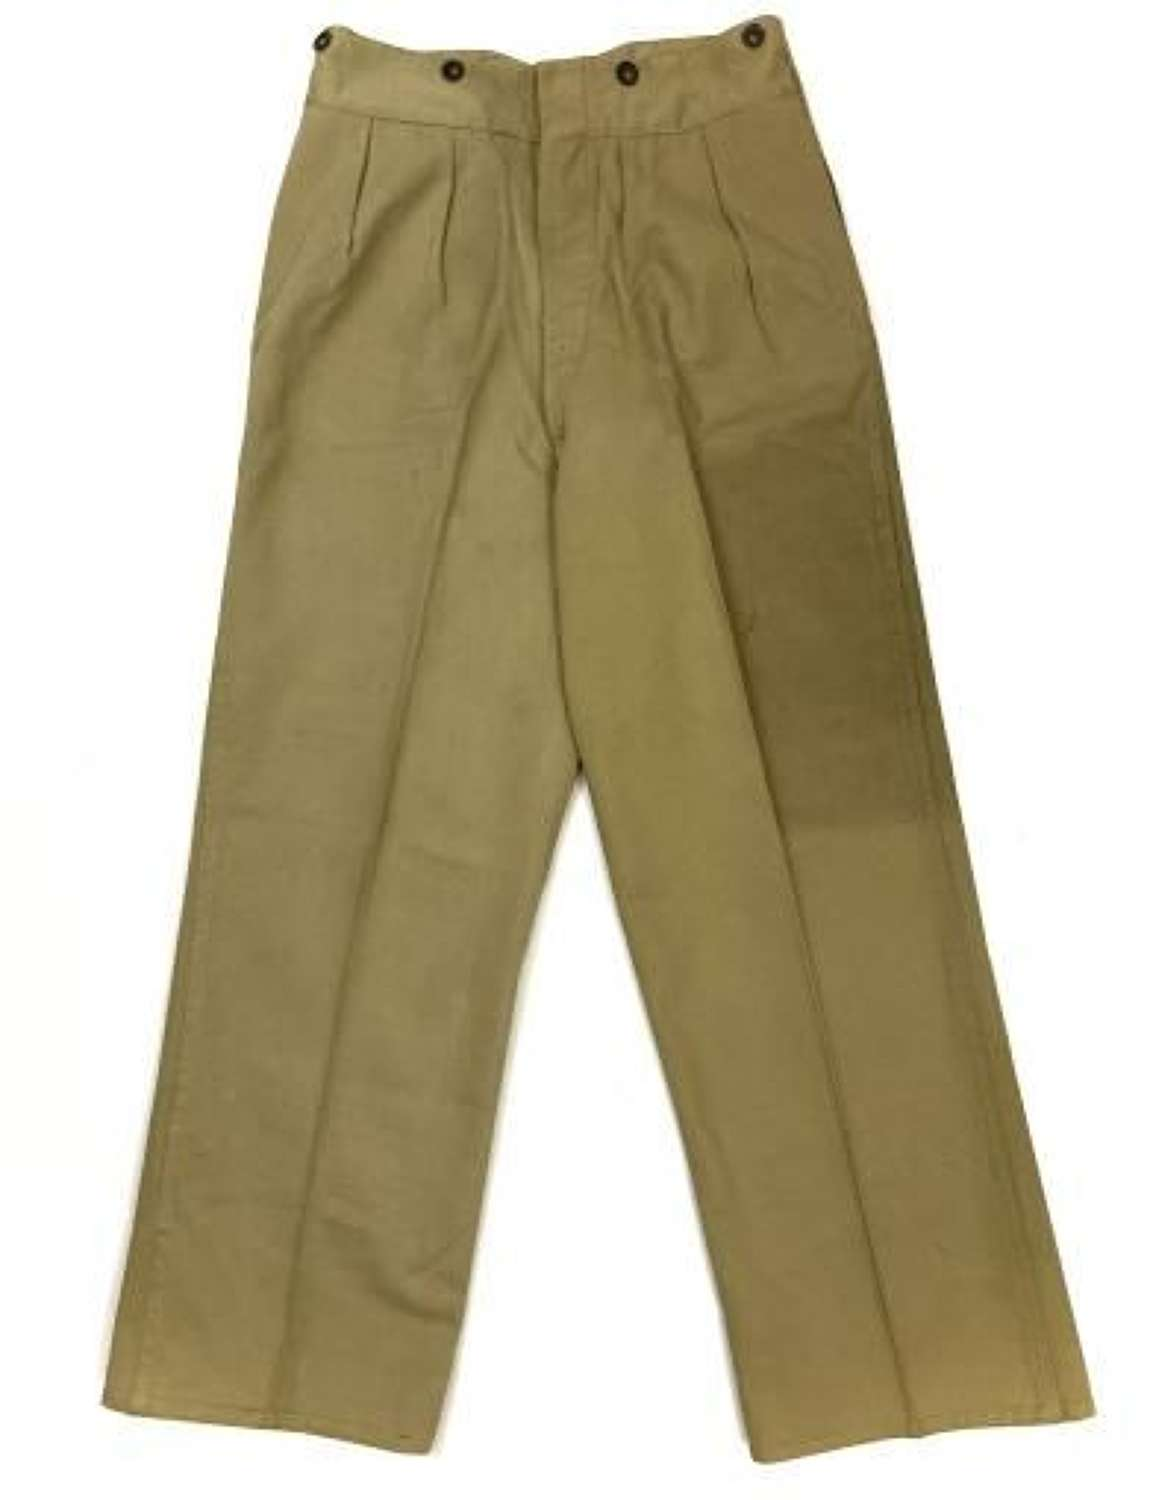 Original 1941 Dated Indian Made Khaki Drill Trousers